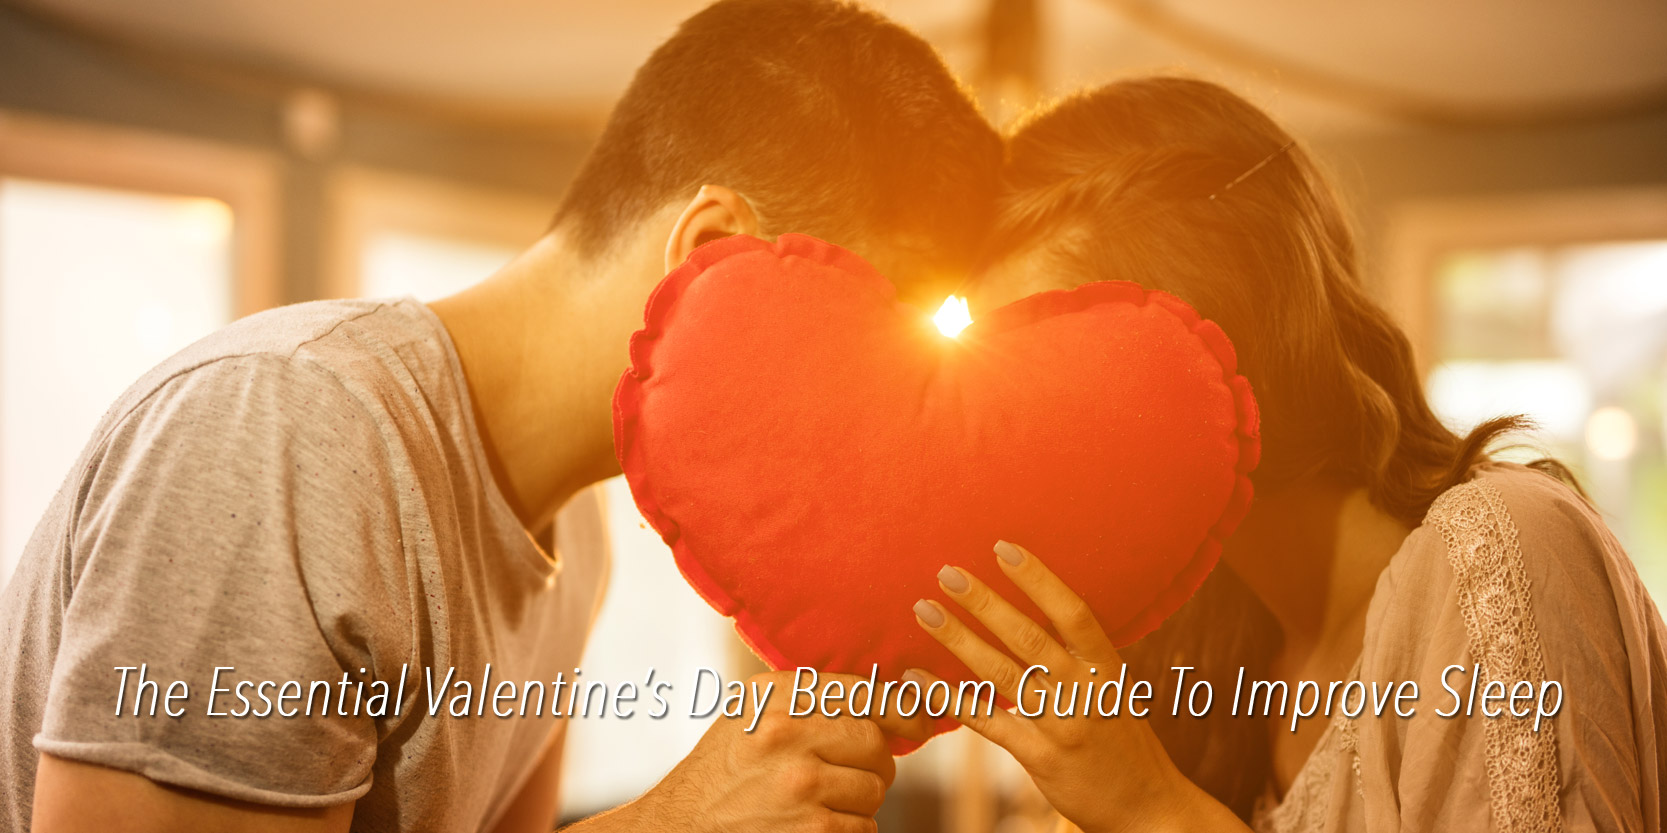 The Essential Valentine's Day Bedroom Guide To Improve Sleep